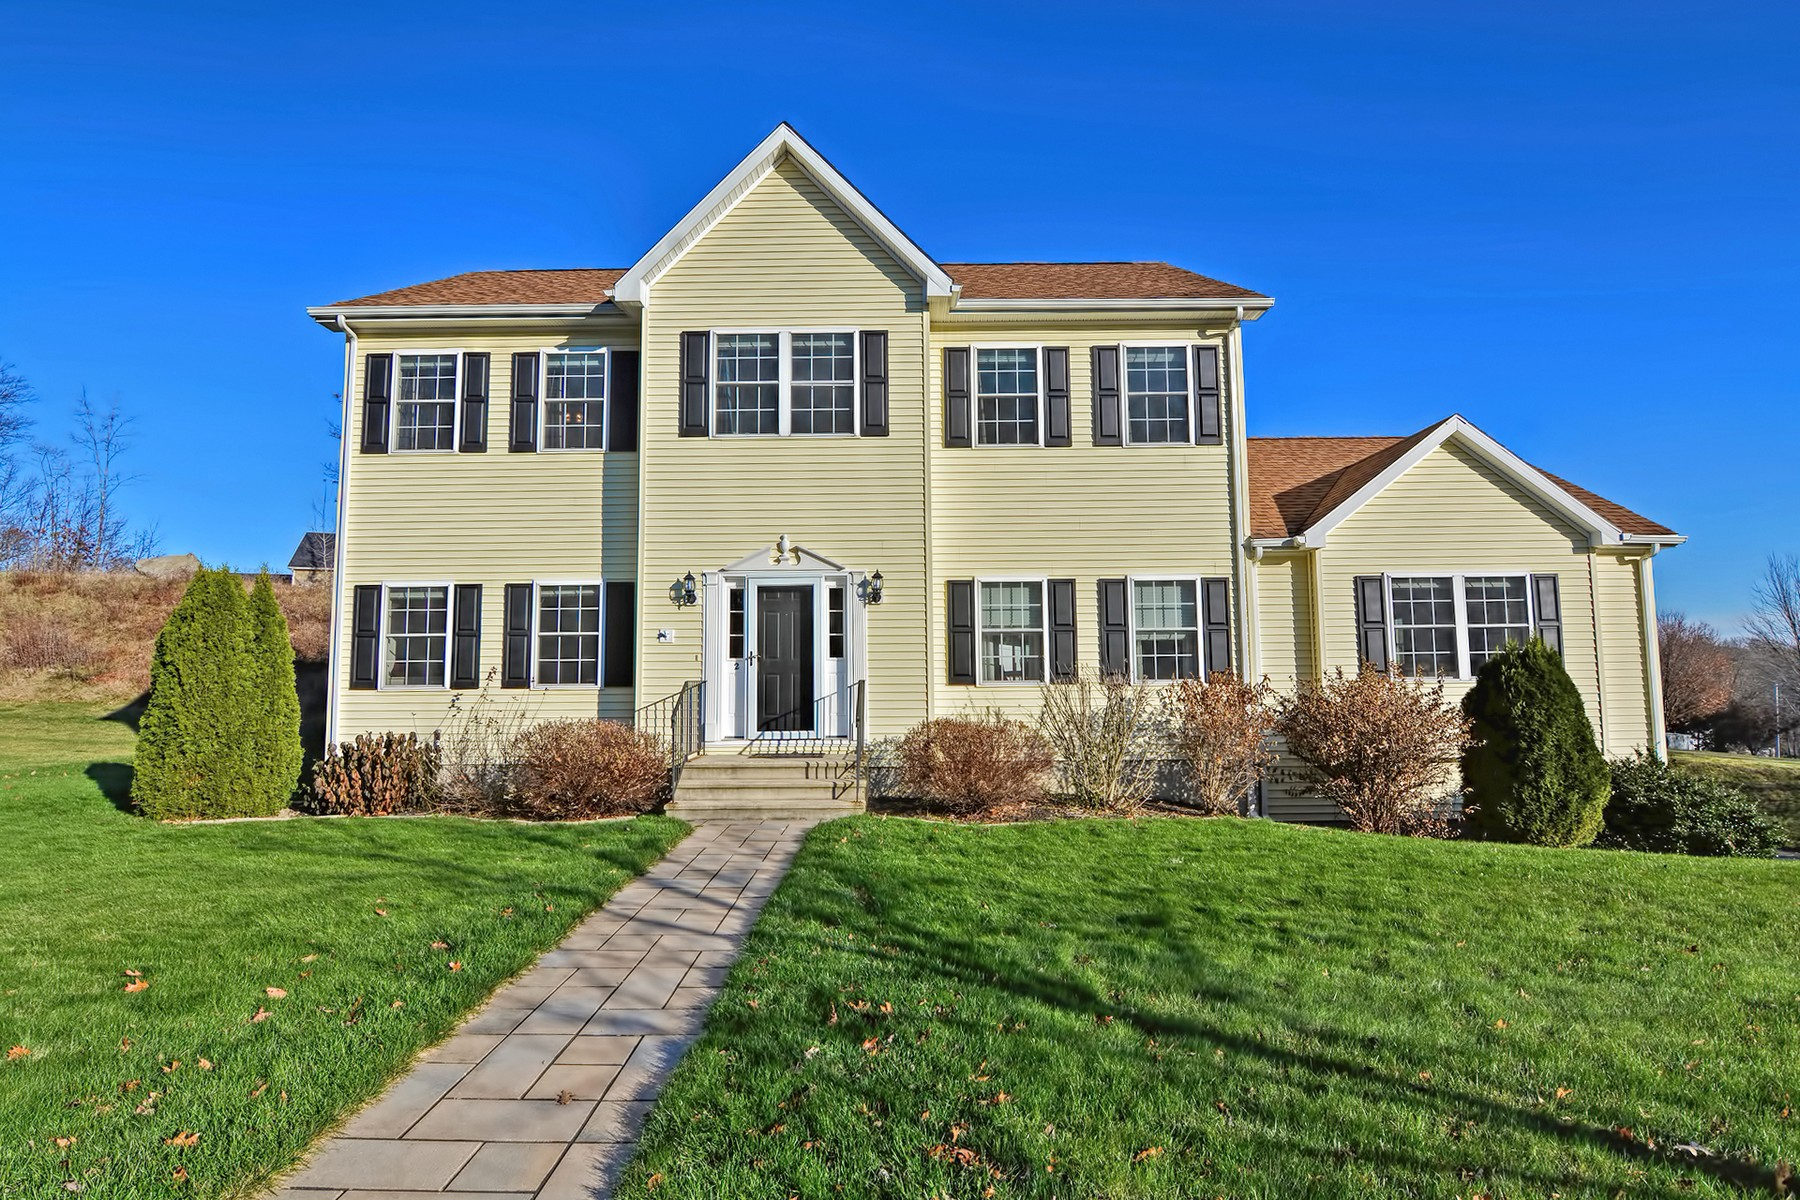 Single Family Homes for Sale at Young Colonial - Cronin Brook Heights 2 Diana Hill Drive Millbury, Massachusetts 01527 United States